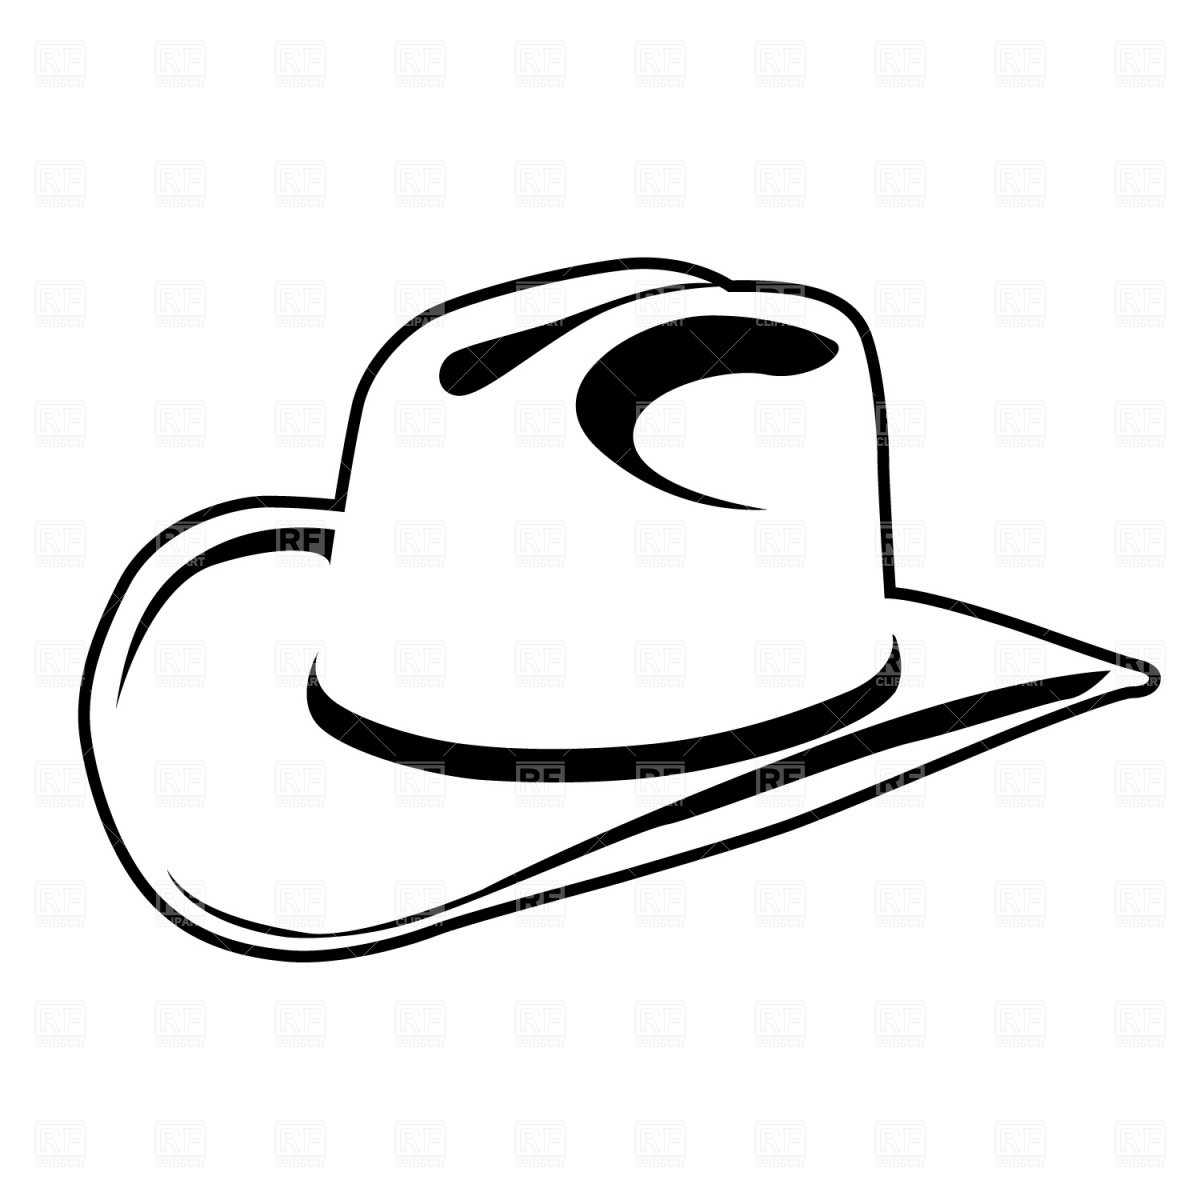 Cowboy hat on a cross clipart graphic library Cowboy hat clipart black and white 2 » Clipart Station graphic library